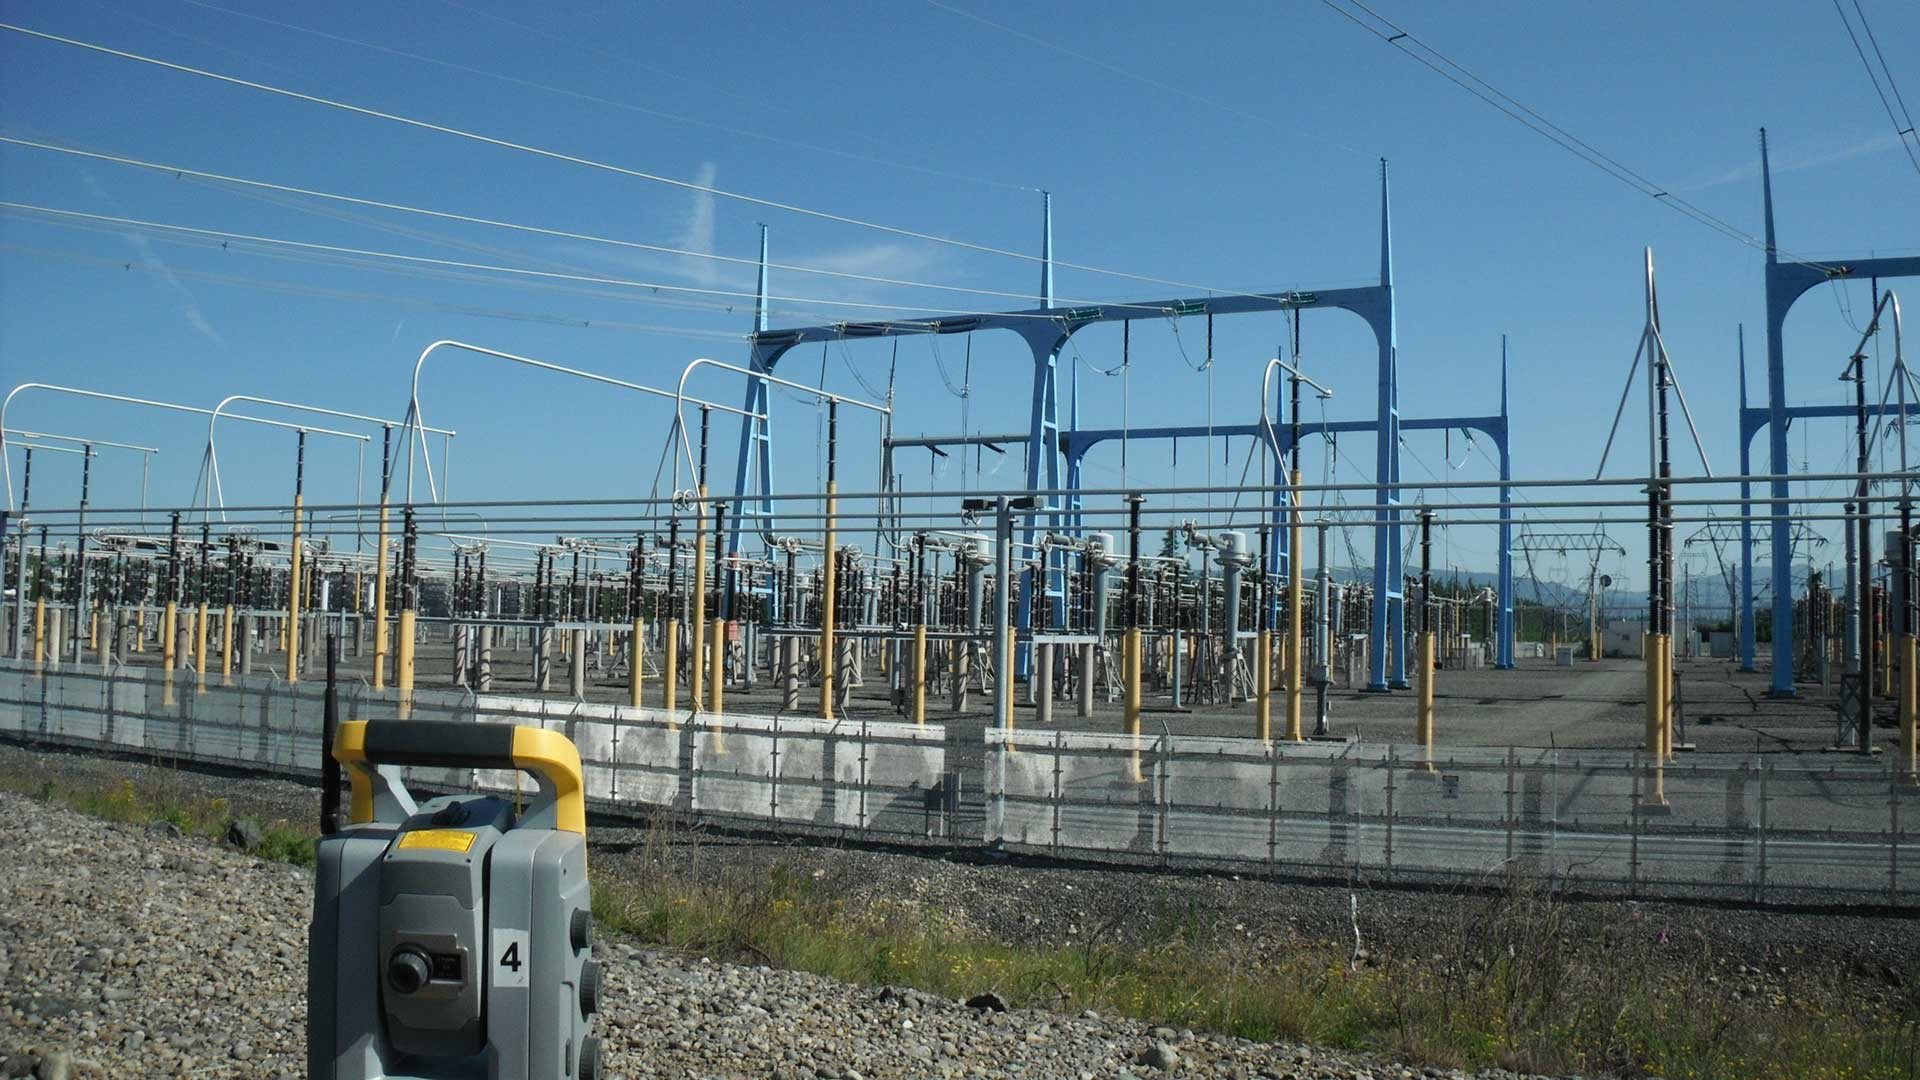 Raver Substation - survey